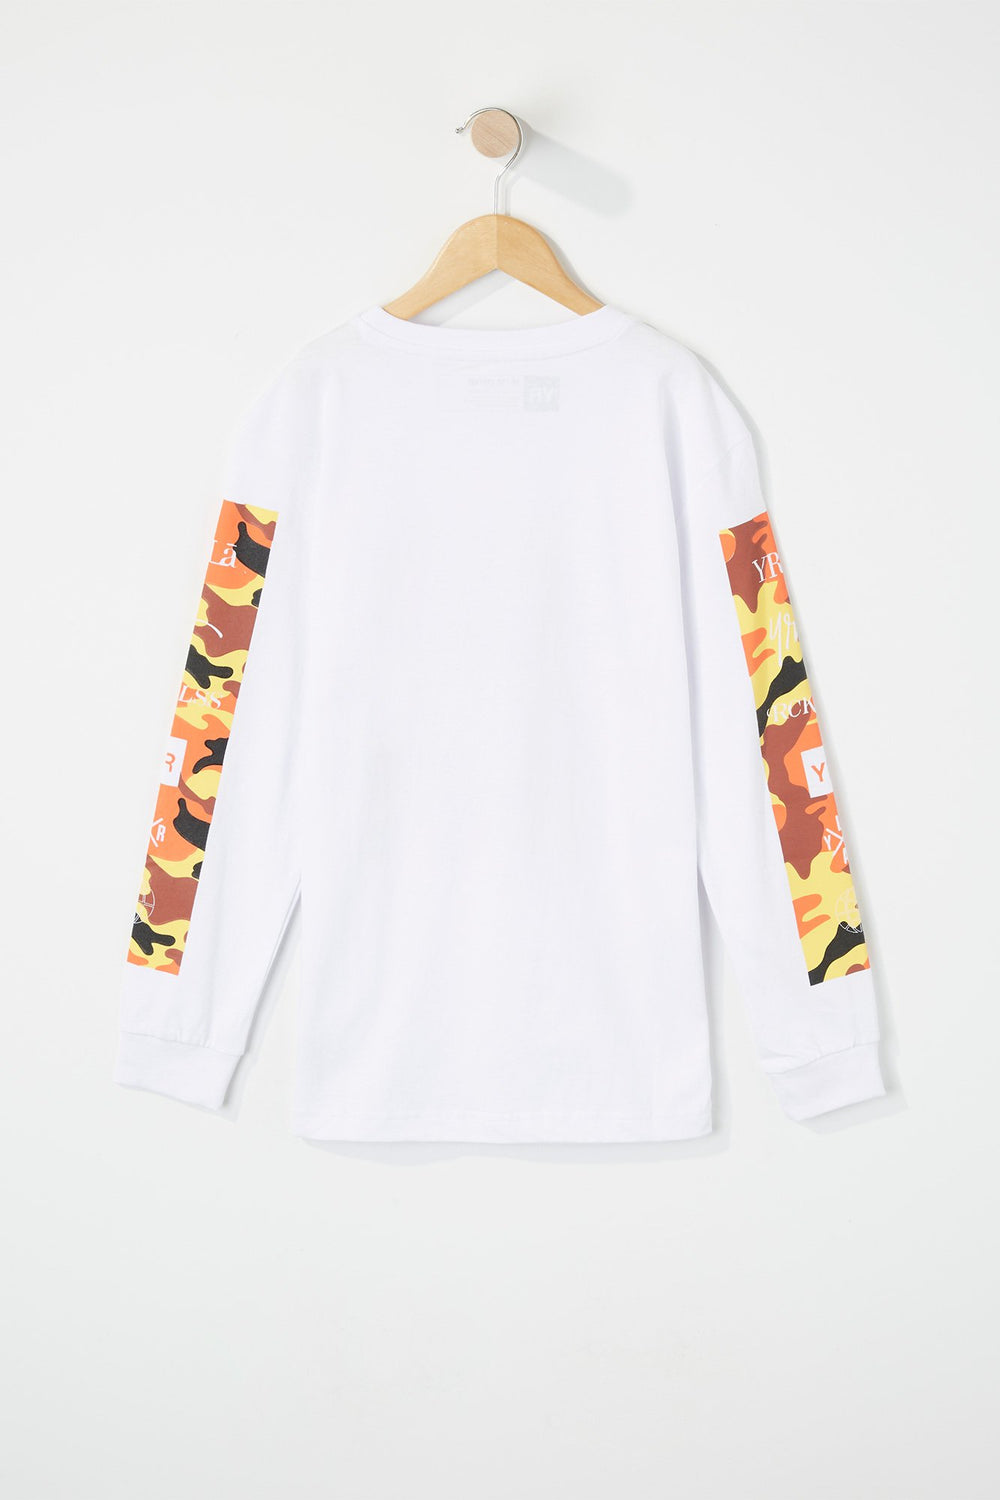 T-Shirt À Manches Longues Camouflage Young & Reckless Blanc